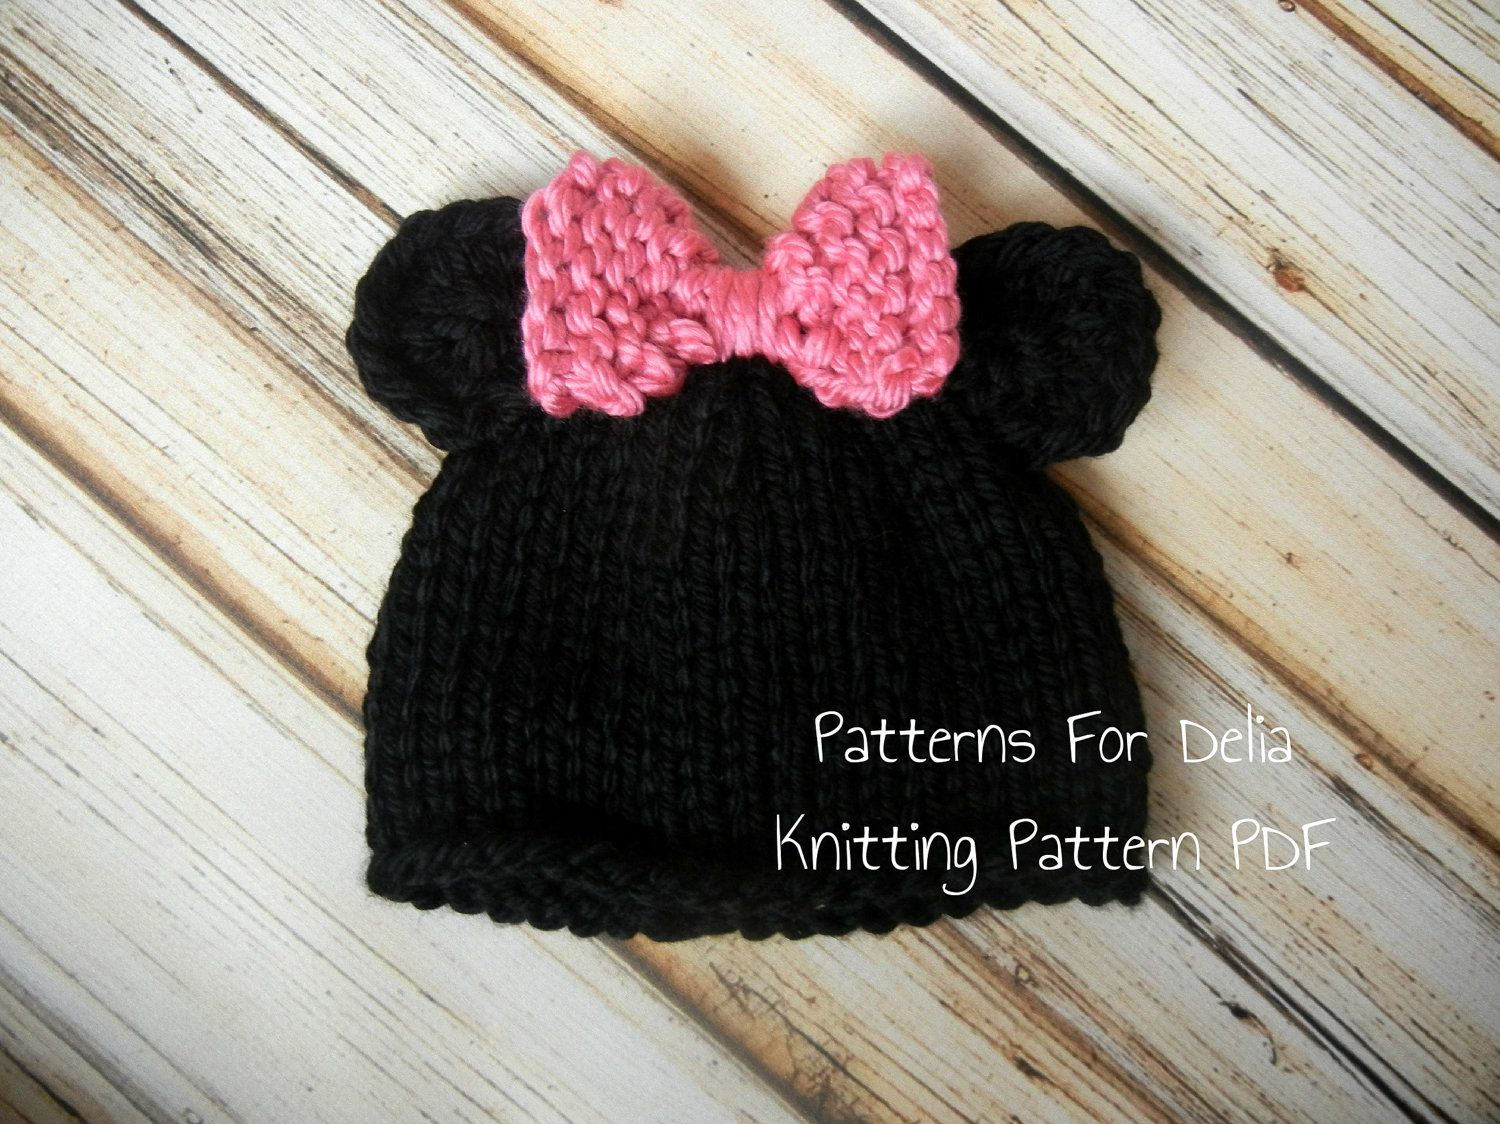 Minnie mickey mouse hat knitting pattern easy beginner teddy bear knitting patterns baby bankloansurffo Images